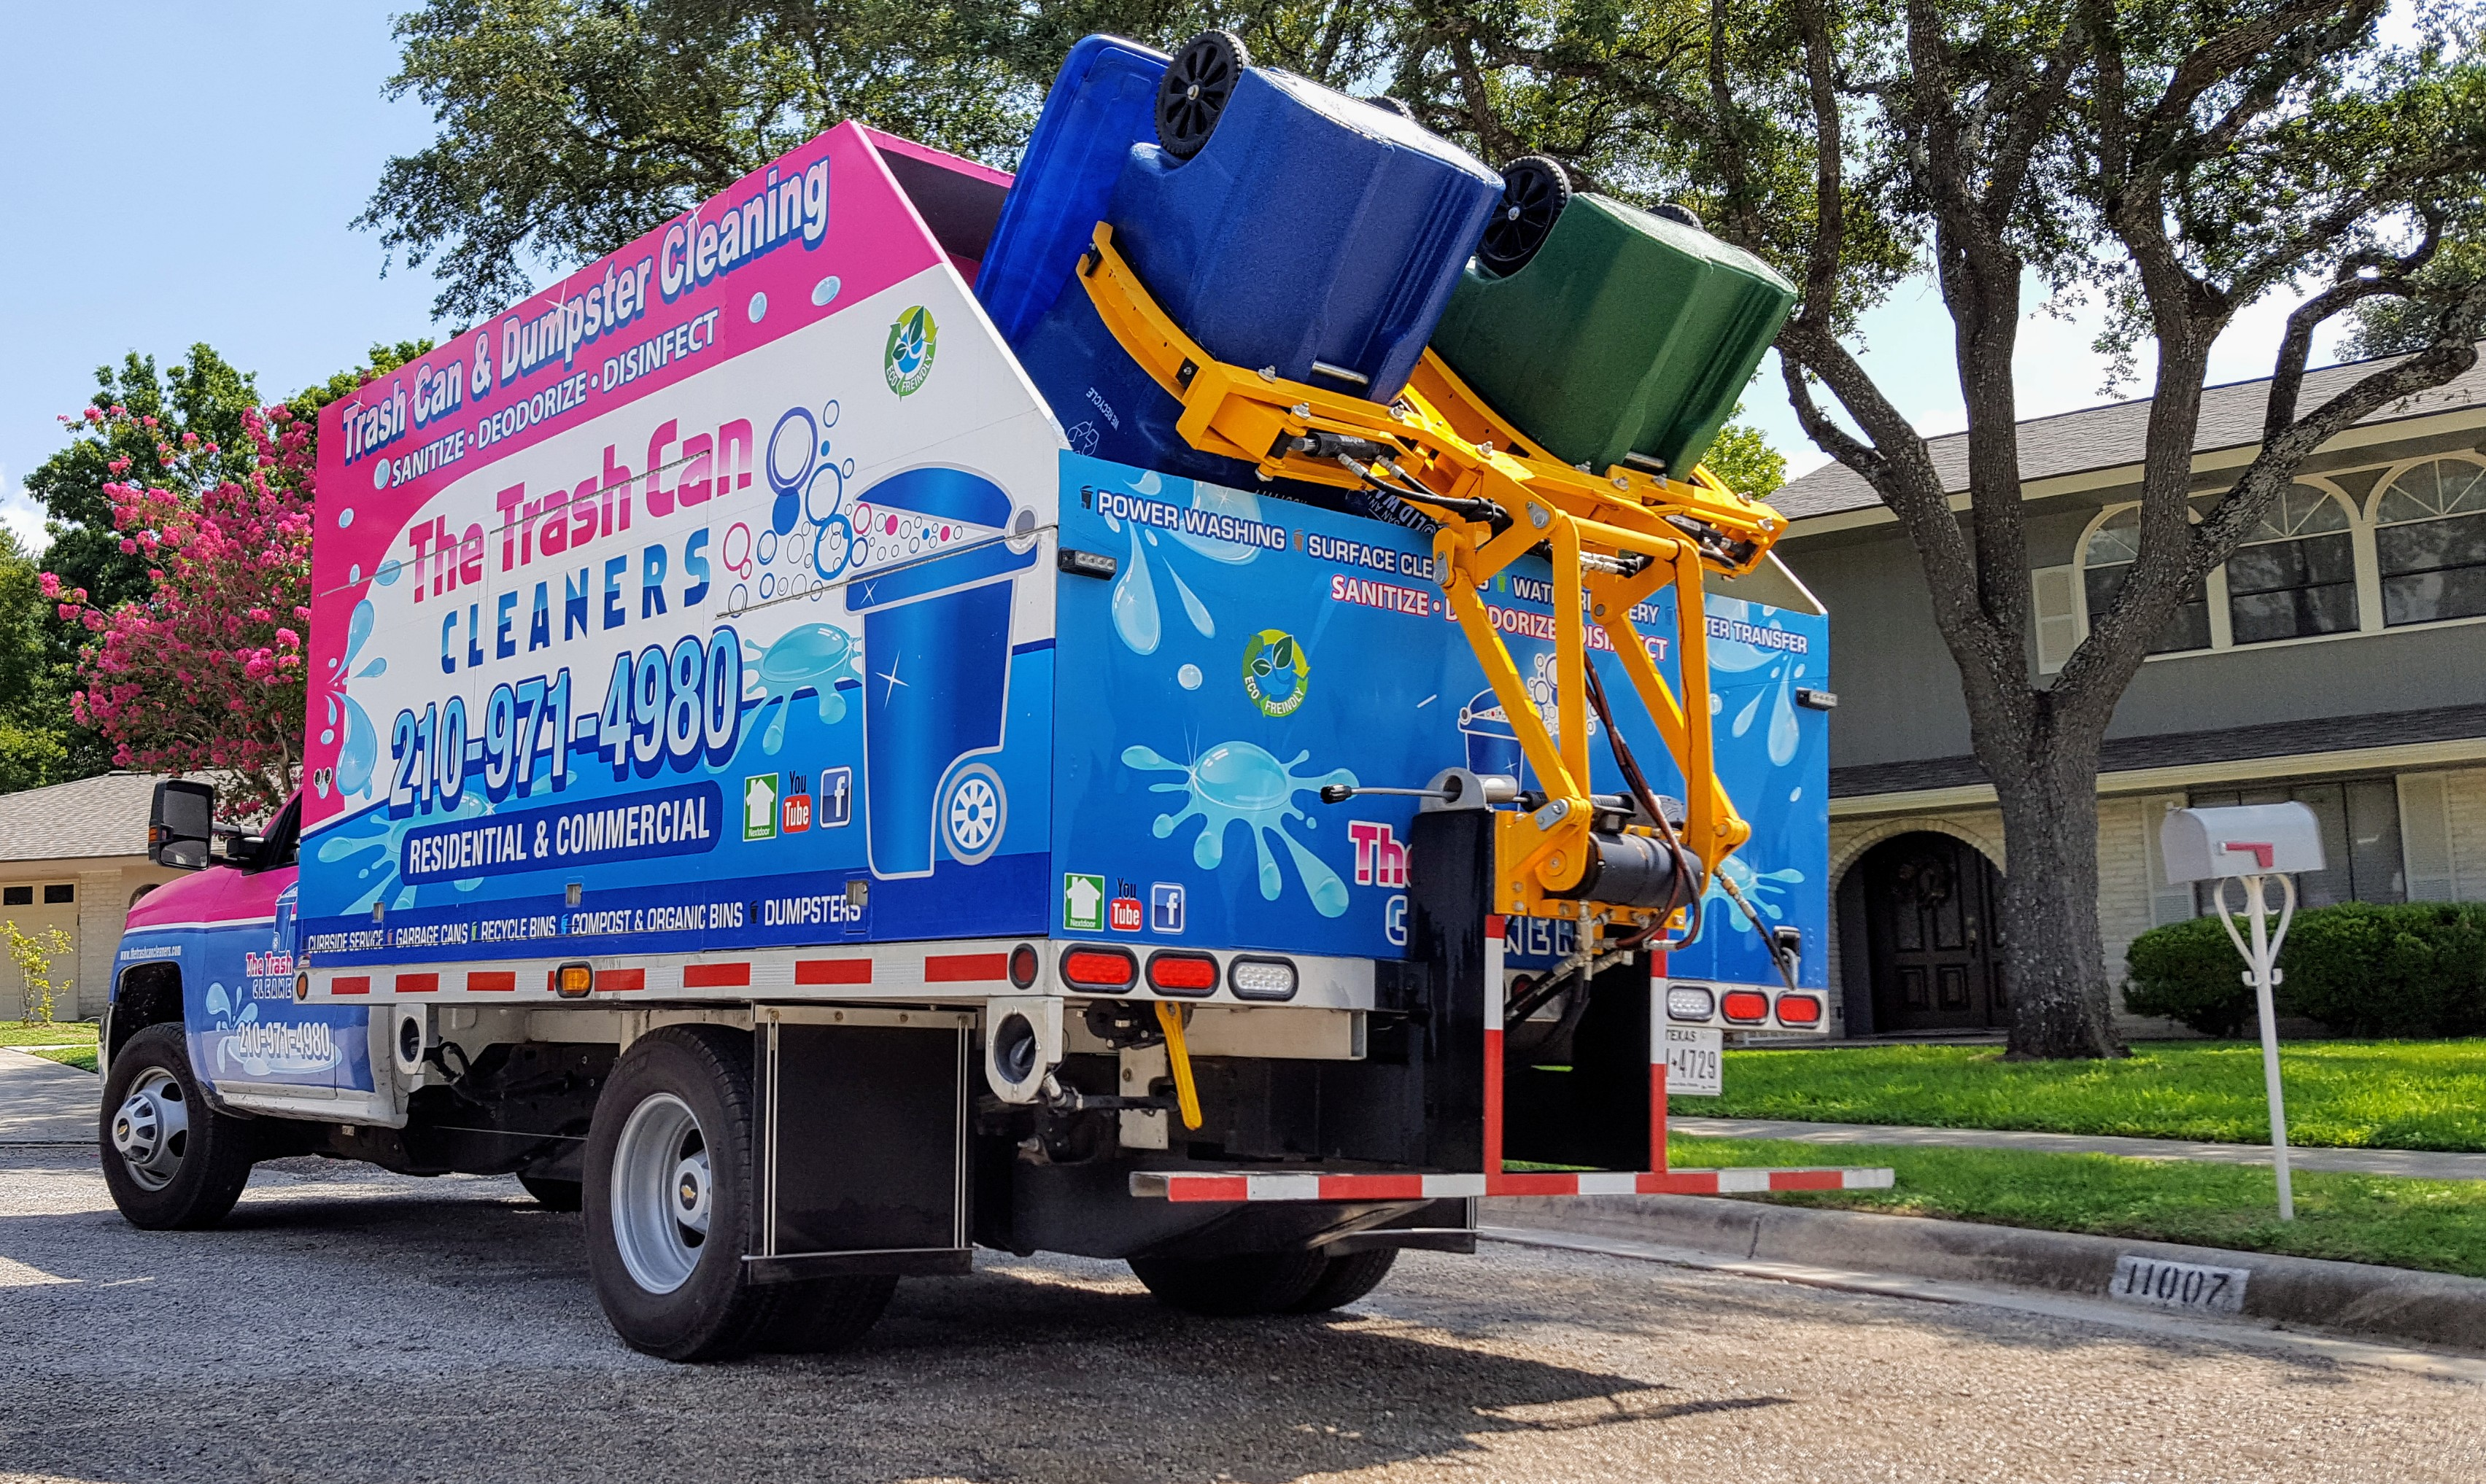 A Mobile Trash Can Cleaning Service Has Hit San Antonio